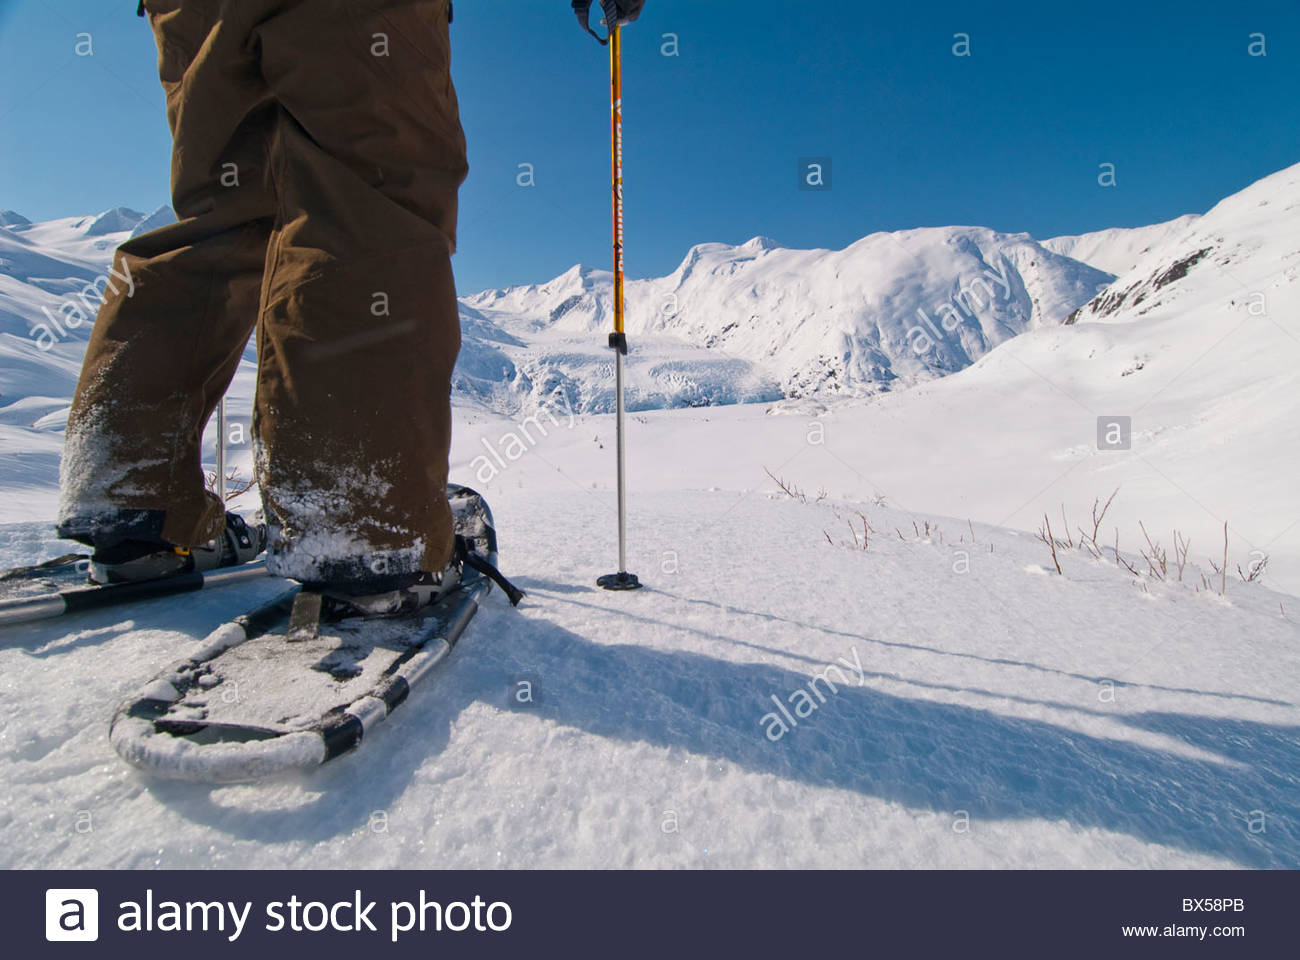 Alaska, Portage Pass in the Chugach National Forest from Whittier to Portage Lake in winter with snowshoes. - Stock Image